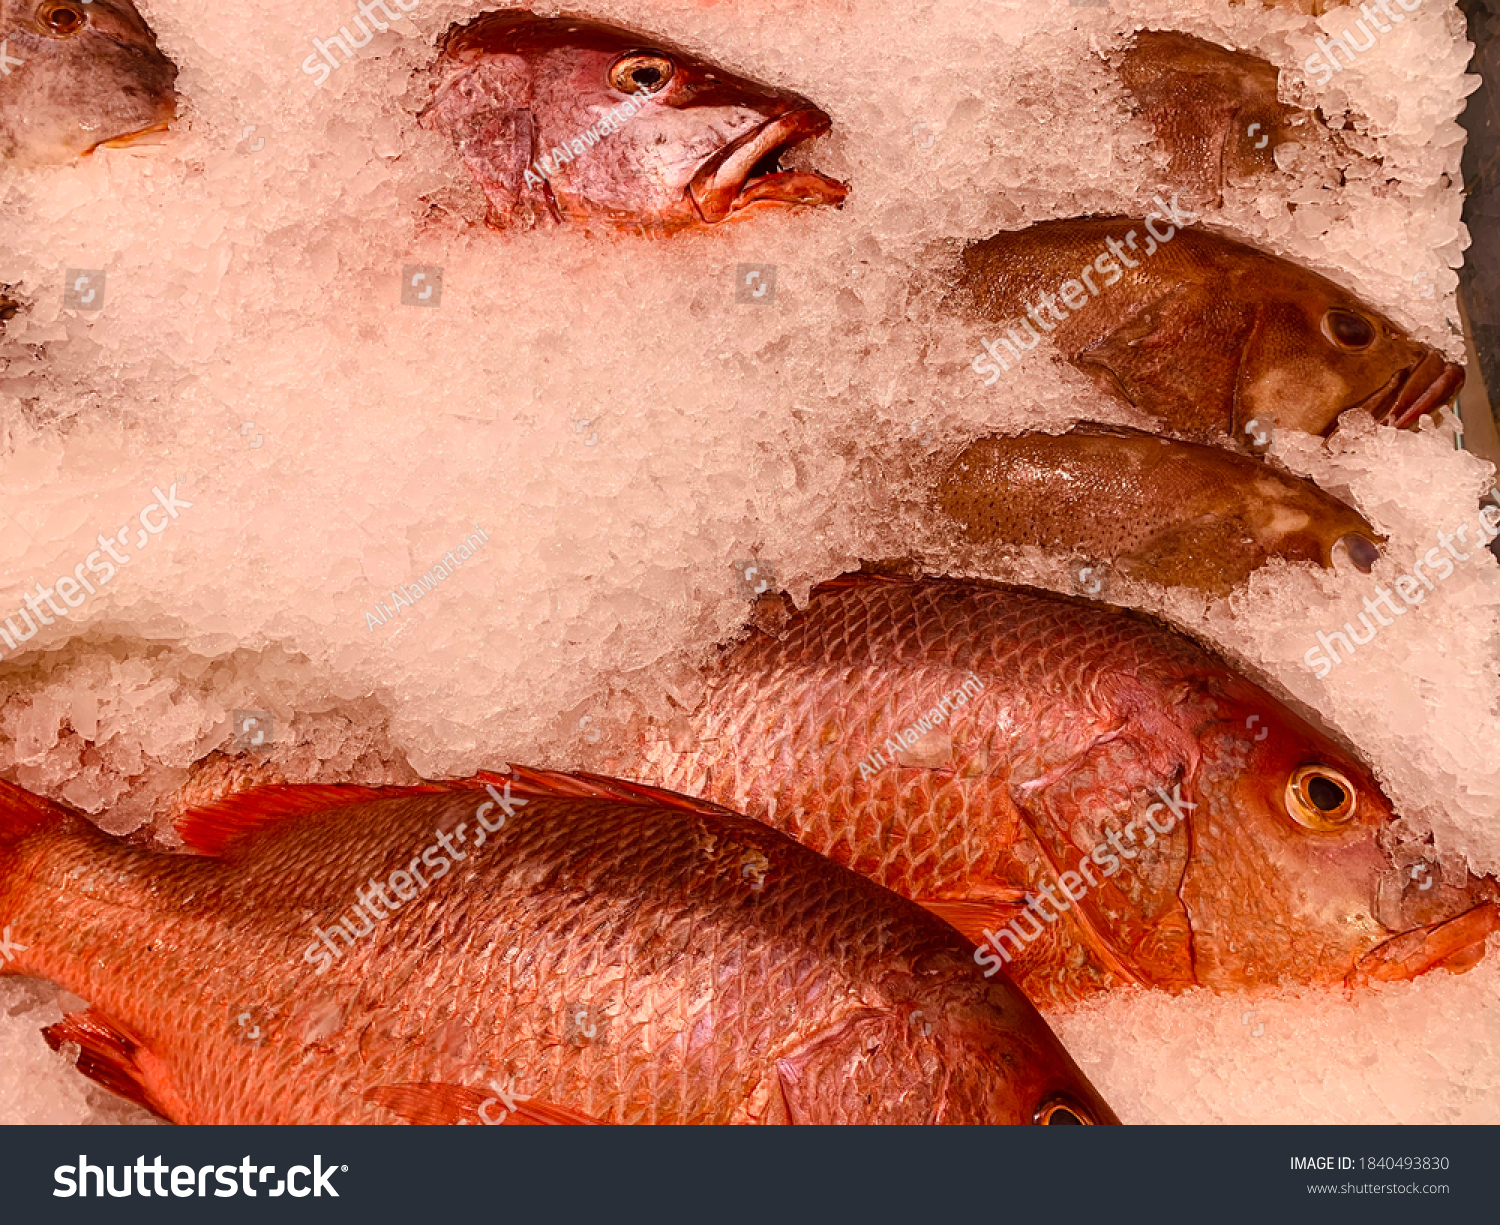 stock-photo-close-up-to-fresh-fish-on-ic